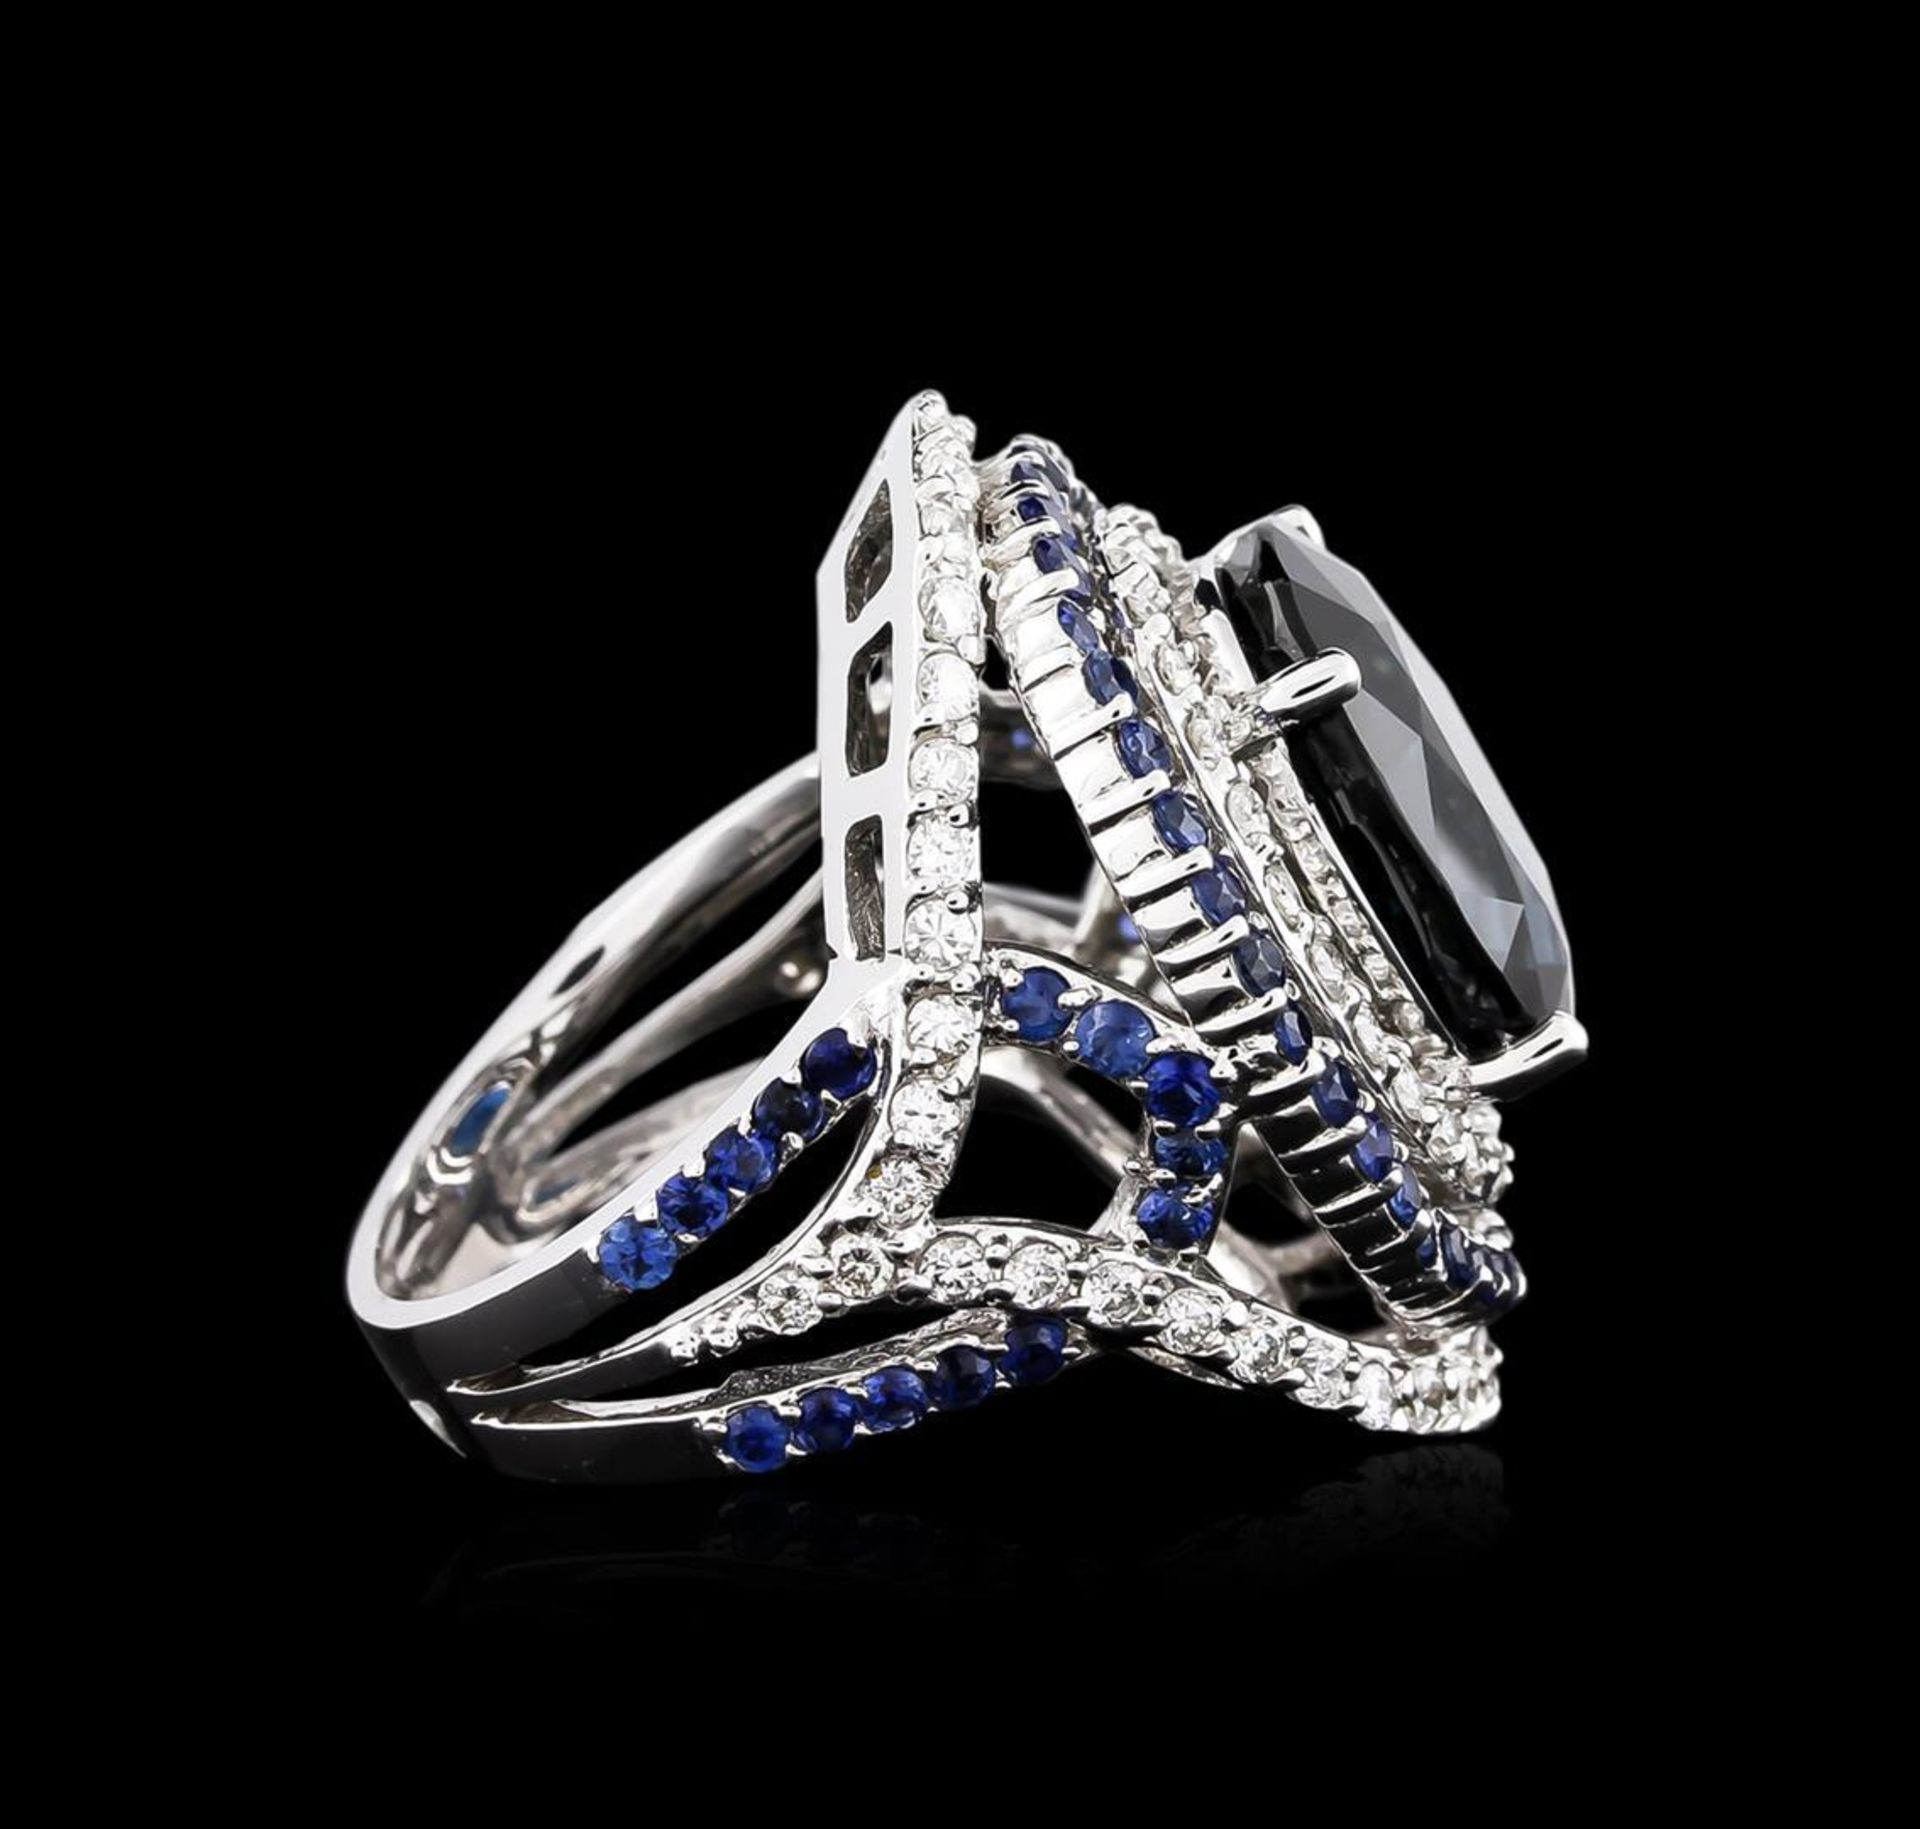 14.21 ctw Sapphire and Diamond Ring - 18KT White Gold GIA Certified - Image 3 of 5